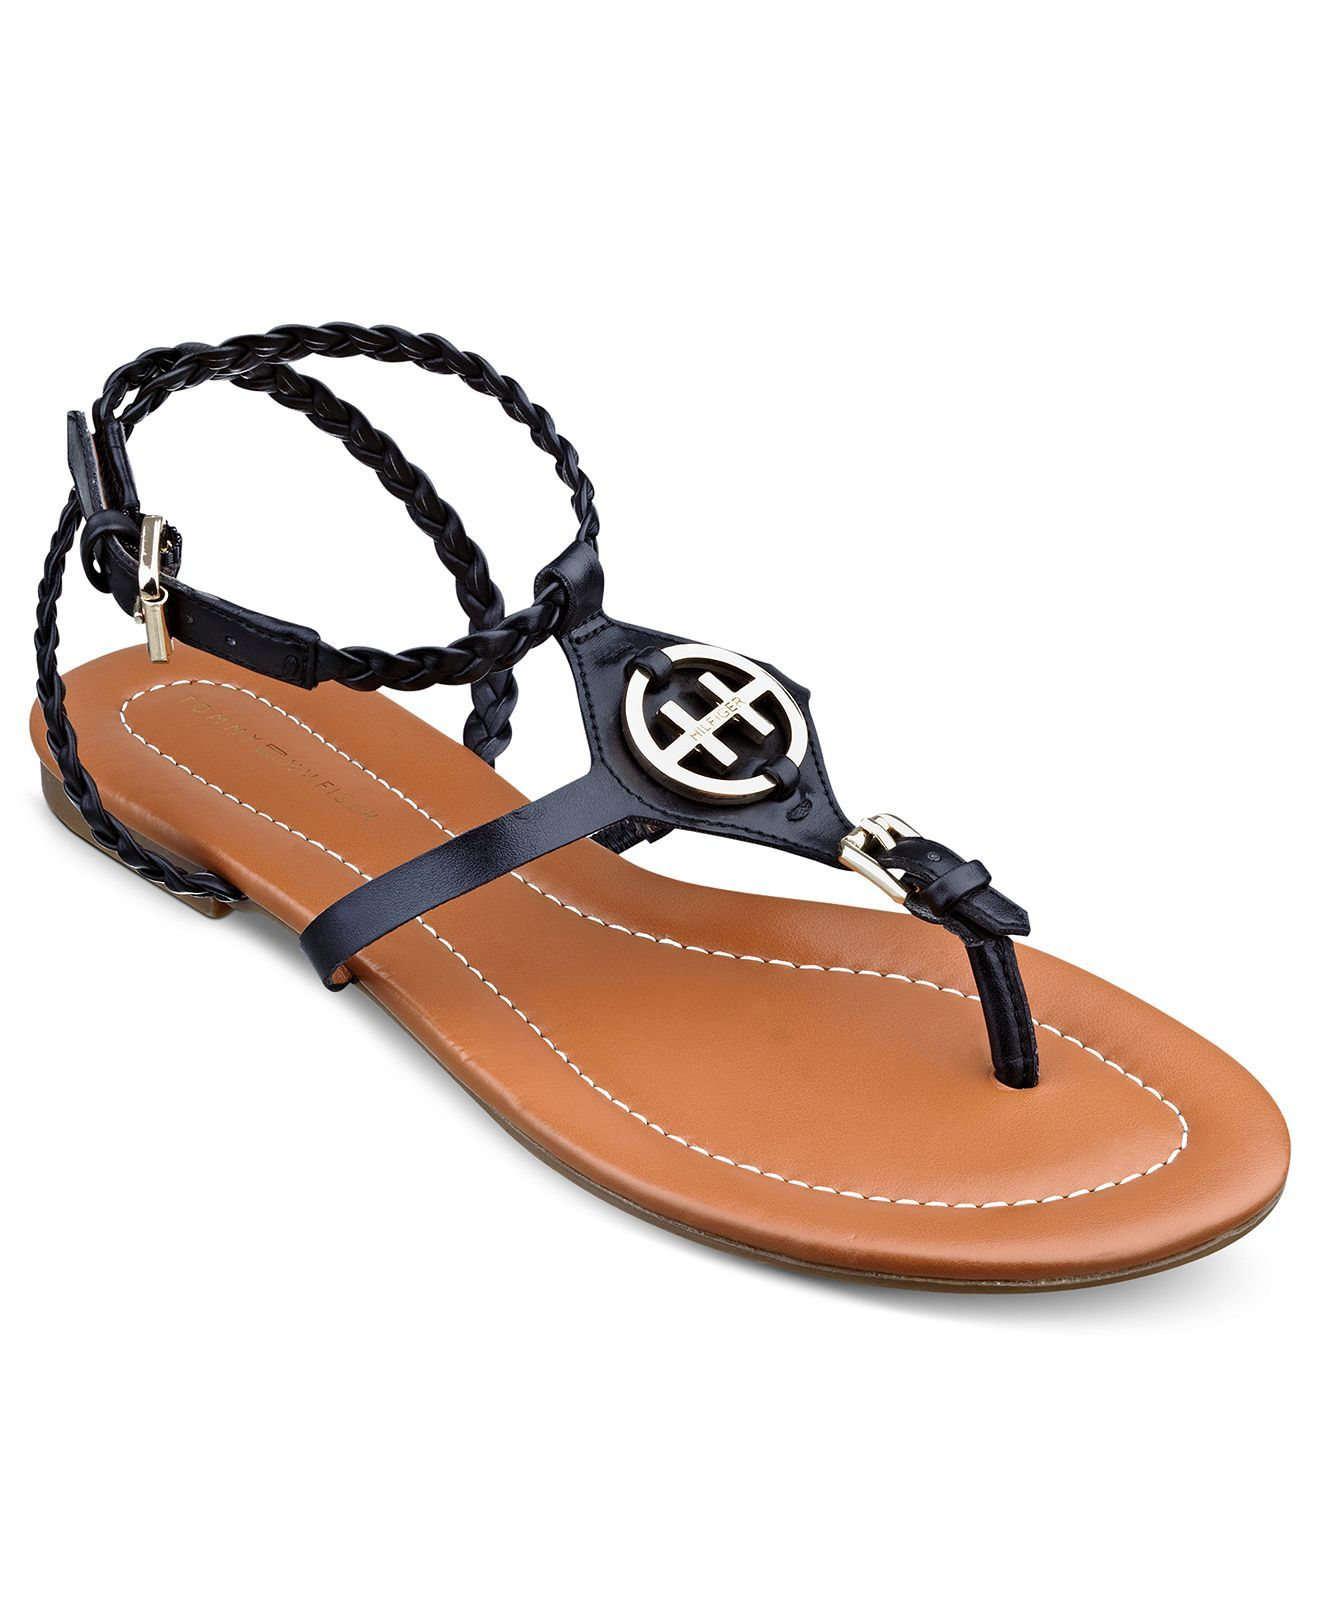 Tommy Hilfiger Strom Flat Sandals - Tommy Hilfiger - Shoes - Macy's